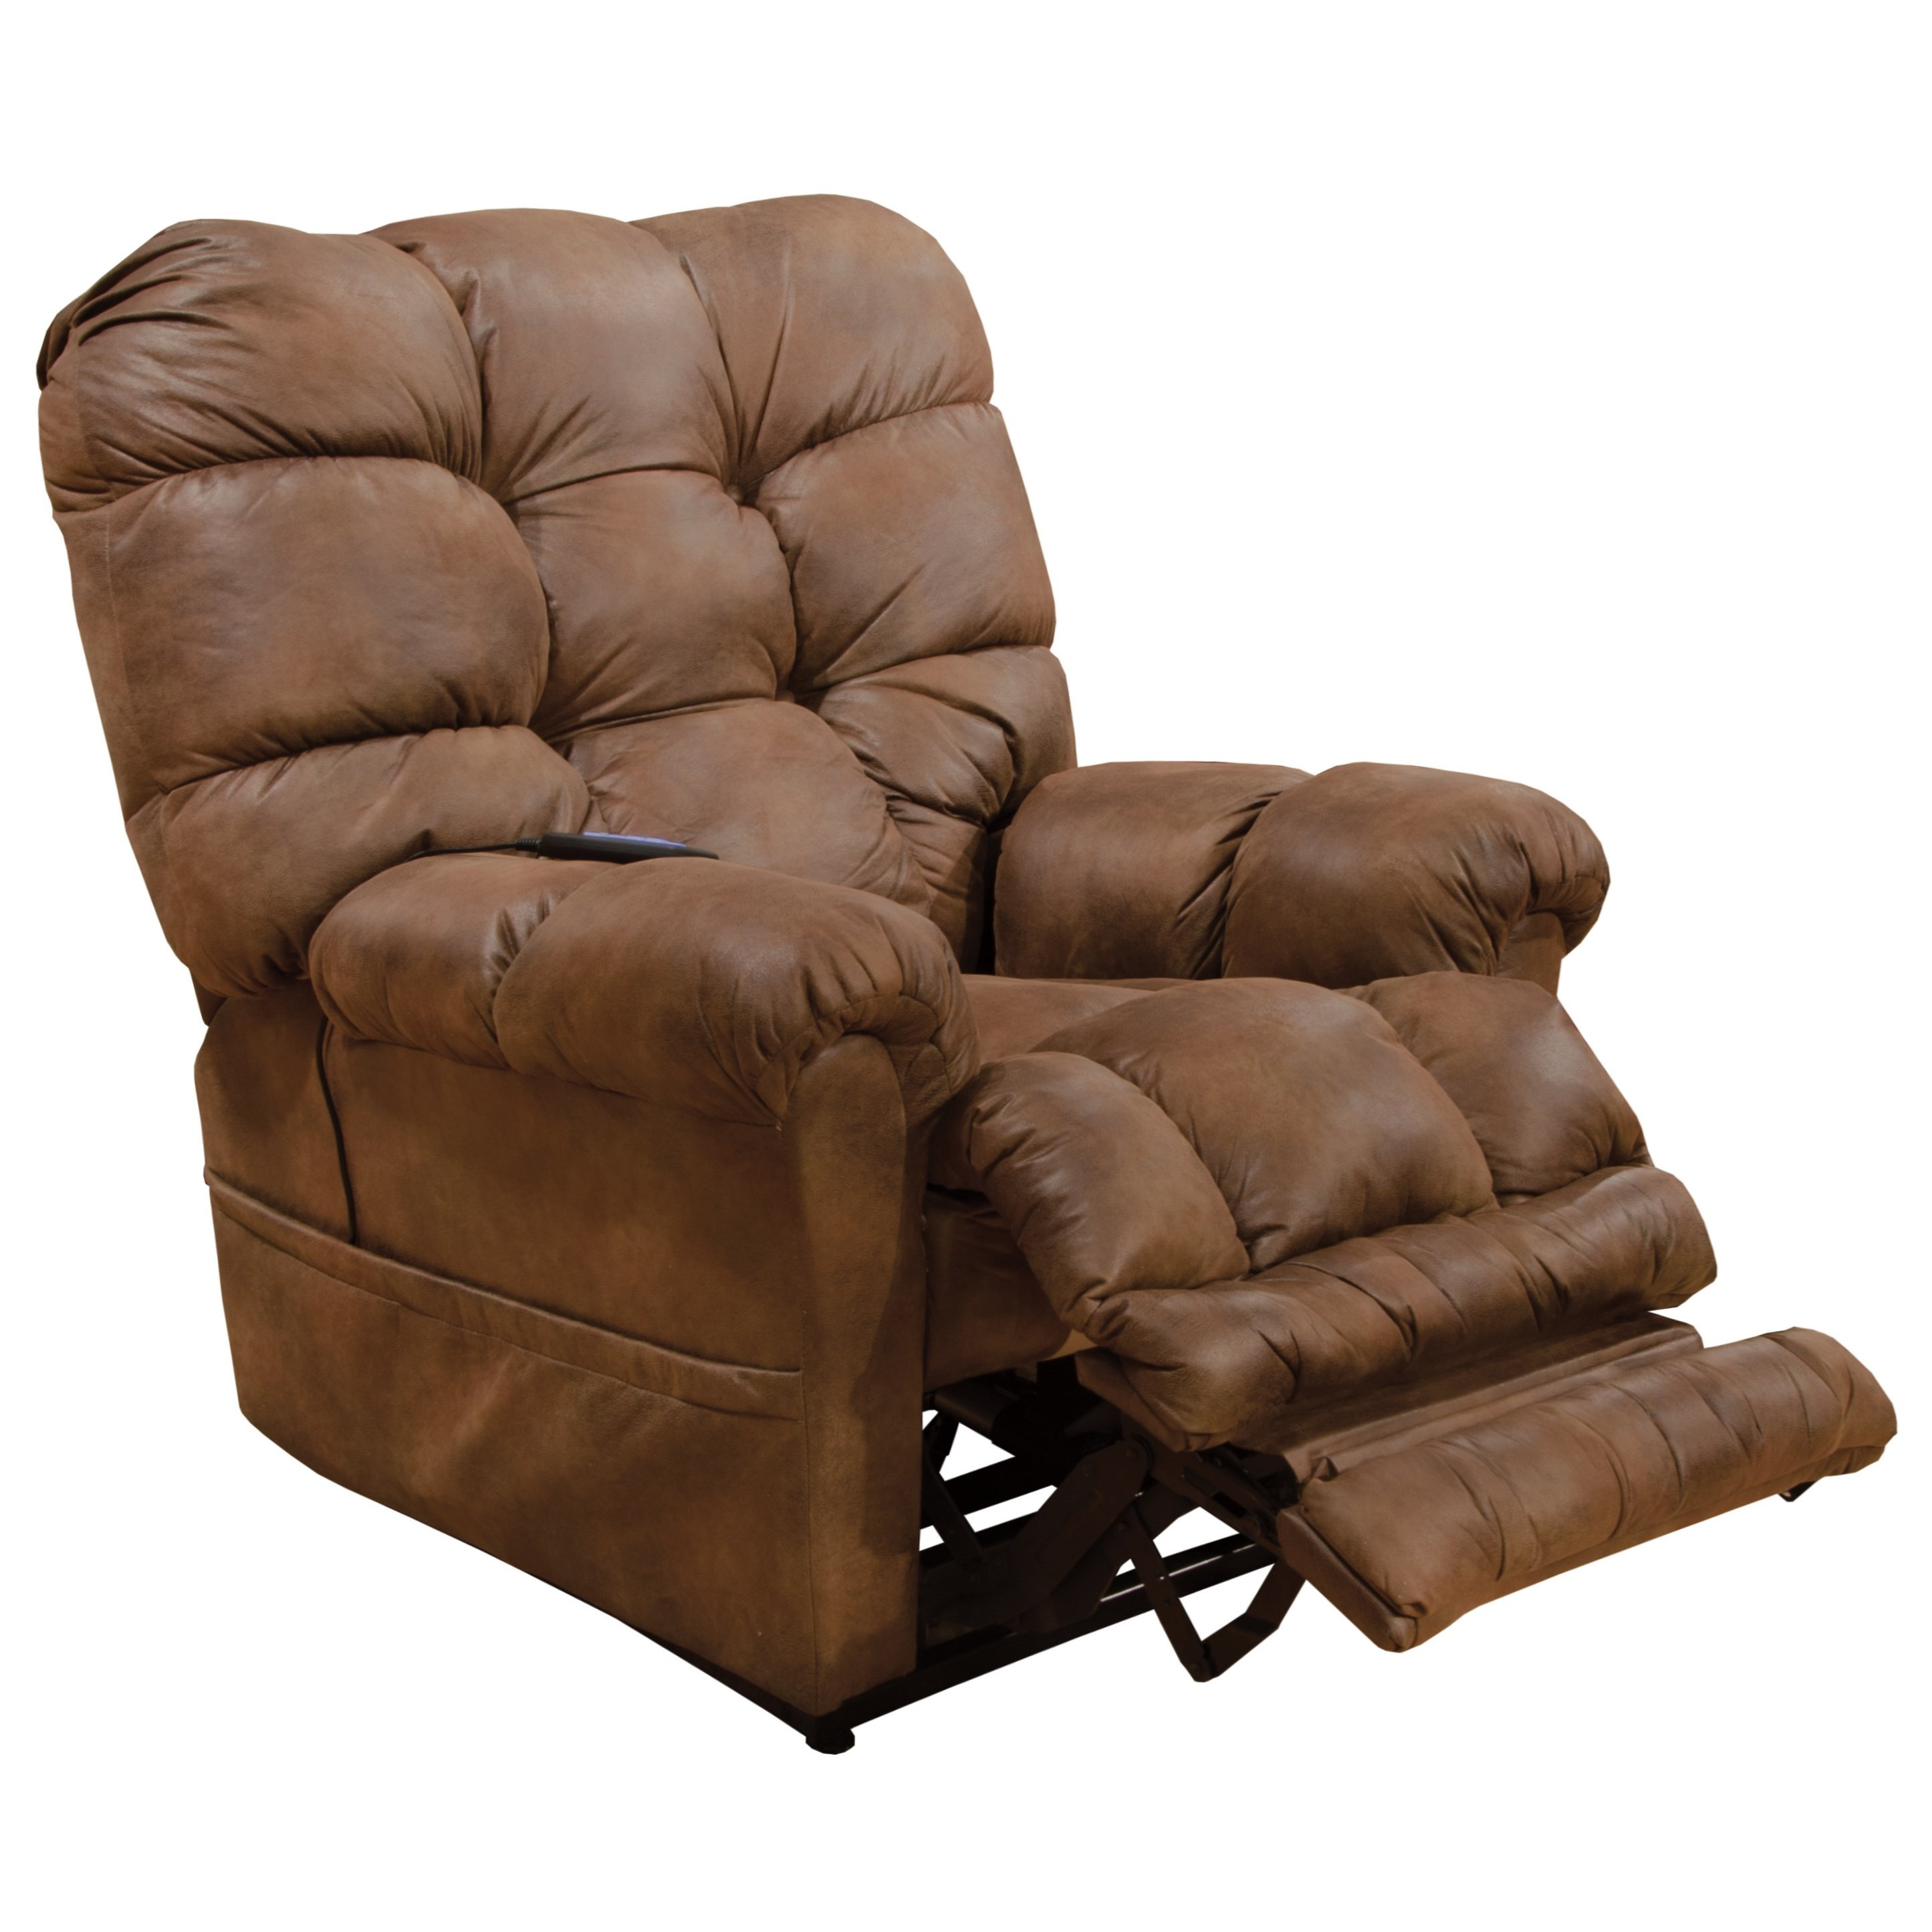 Catnapper Lift Chairs Catnapper Oliver Casual Power Lift Recliner With Extended